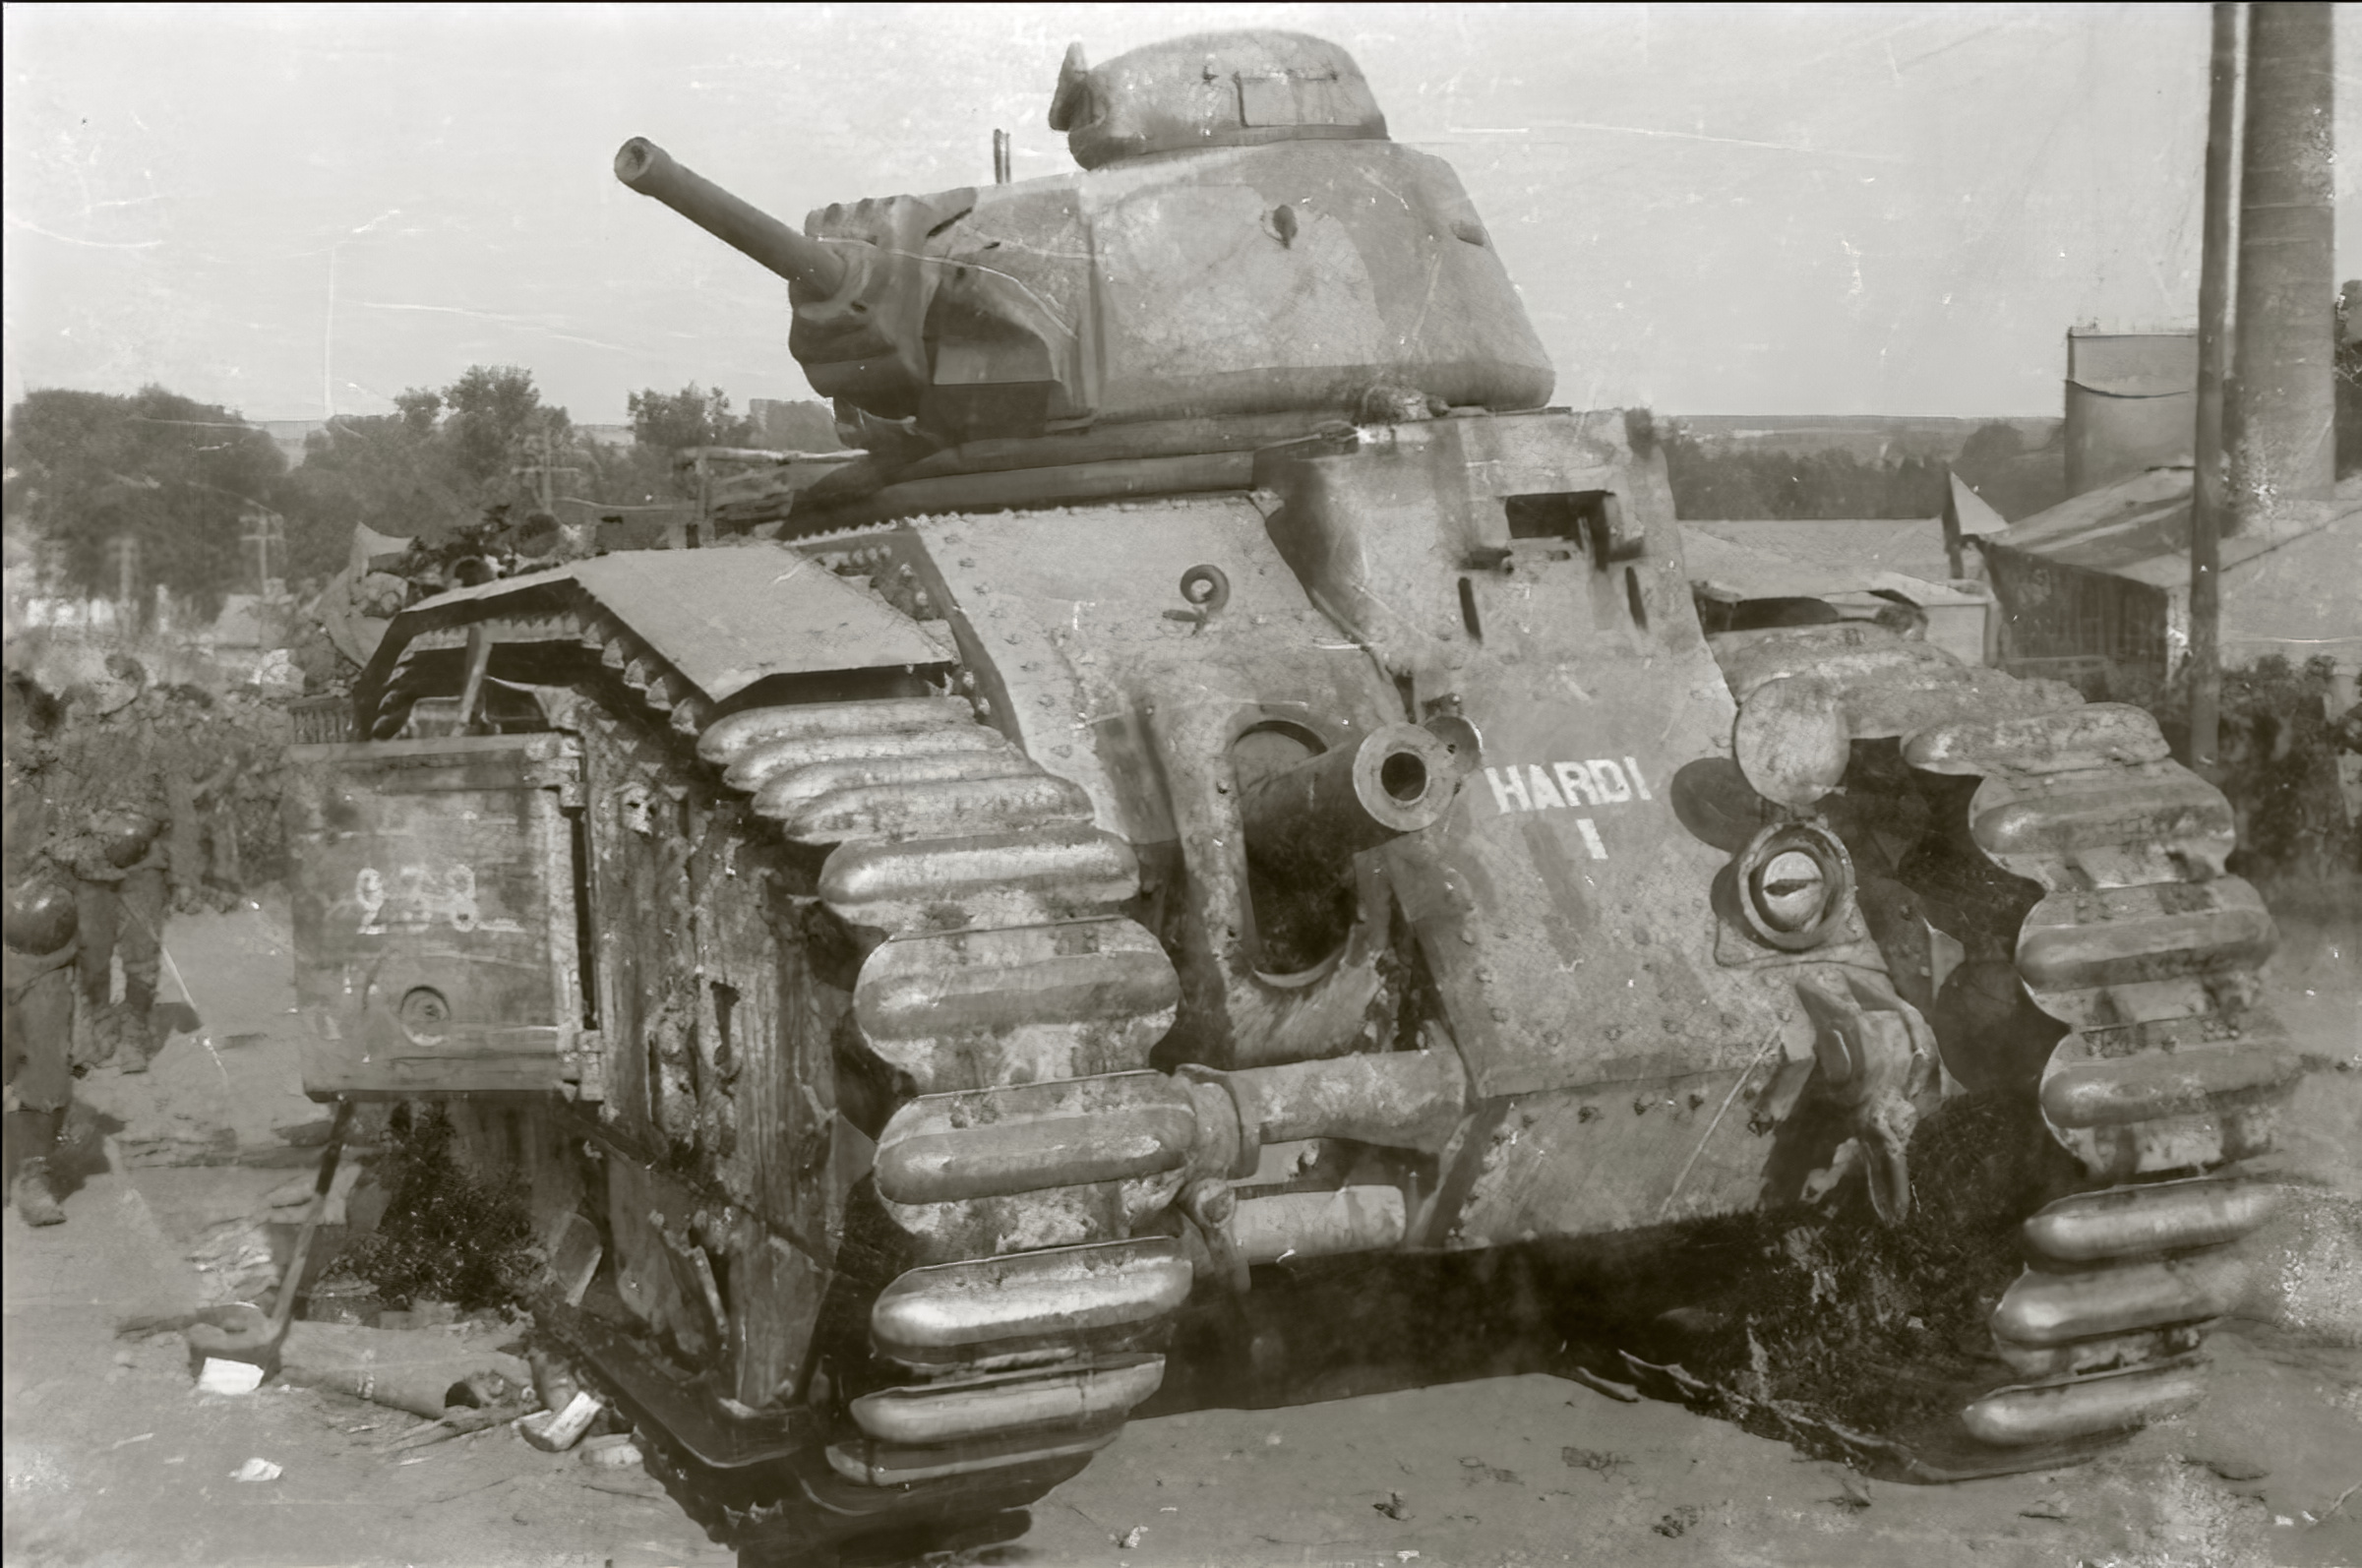 French Army Renault Char B1 named Hardi 238 abandoned during the battle of France 1940 ebay 01